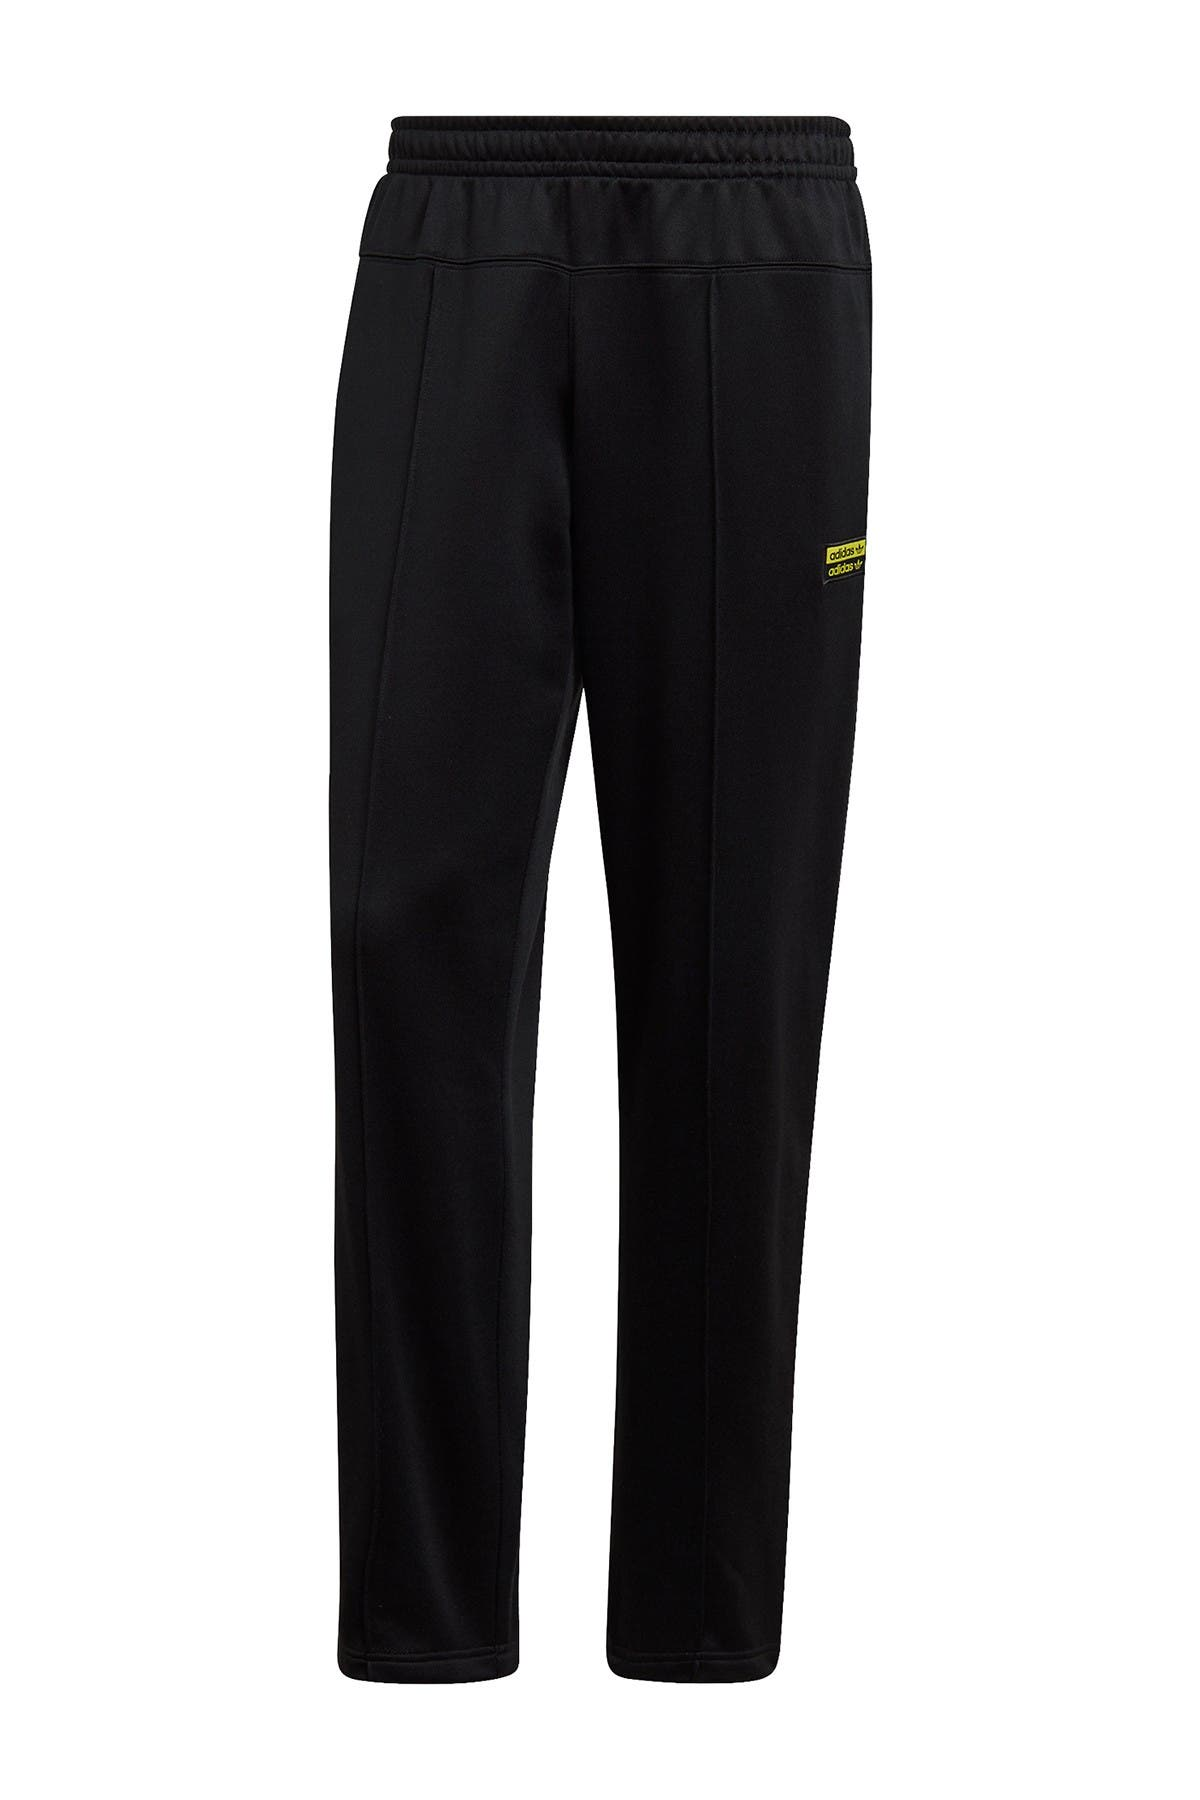 Image of adidas Fashion Sweat Pants